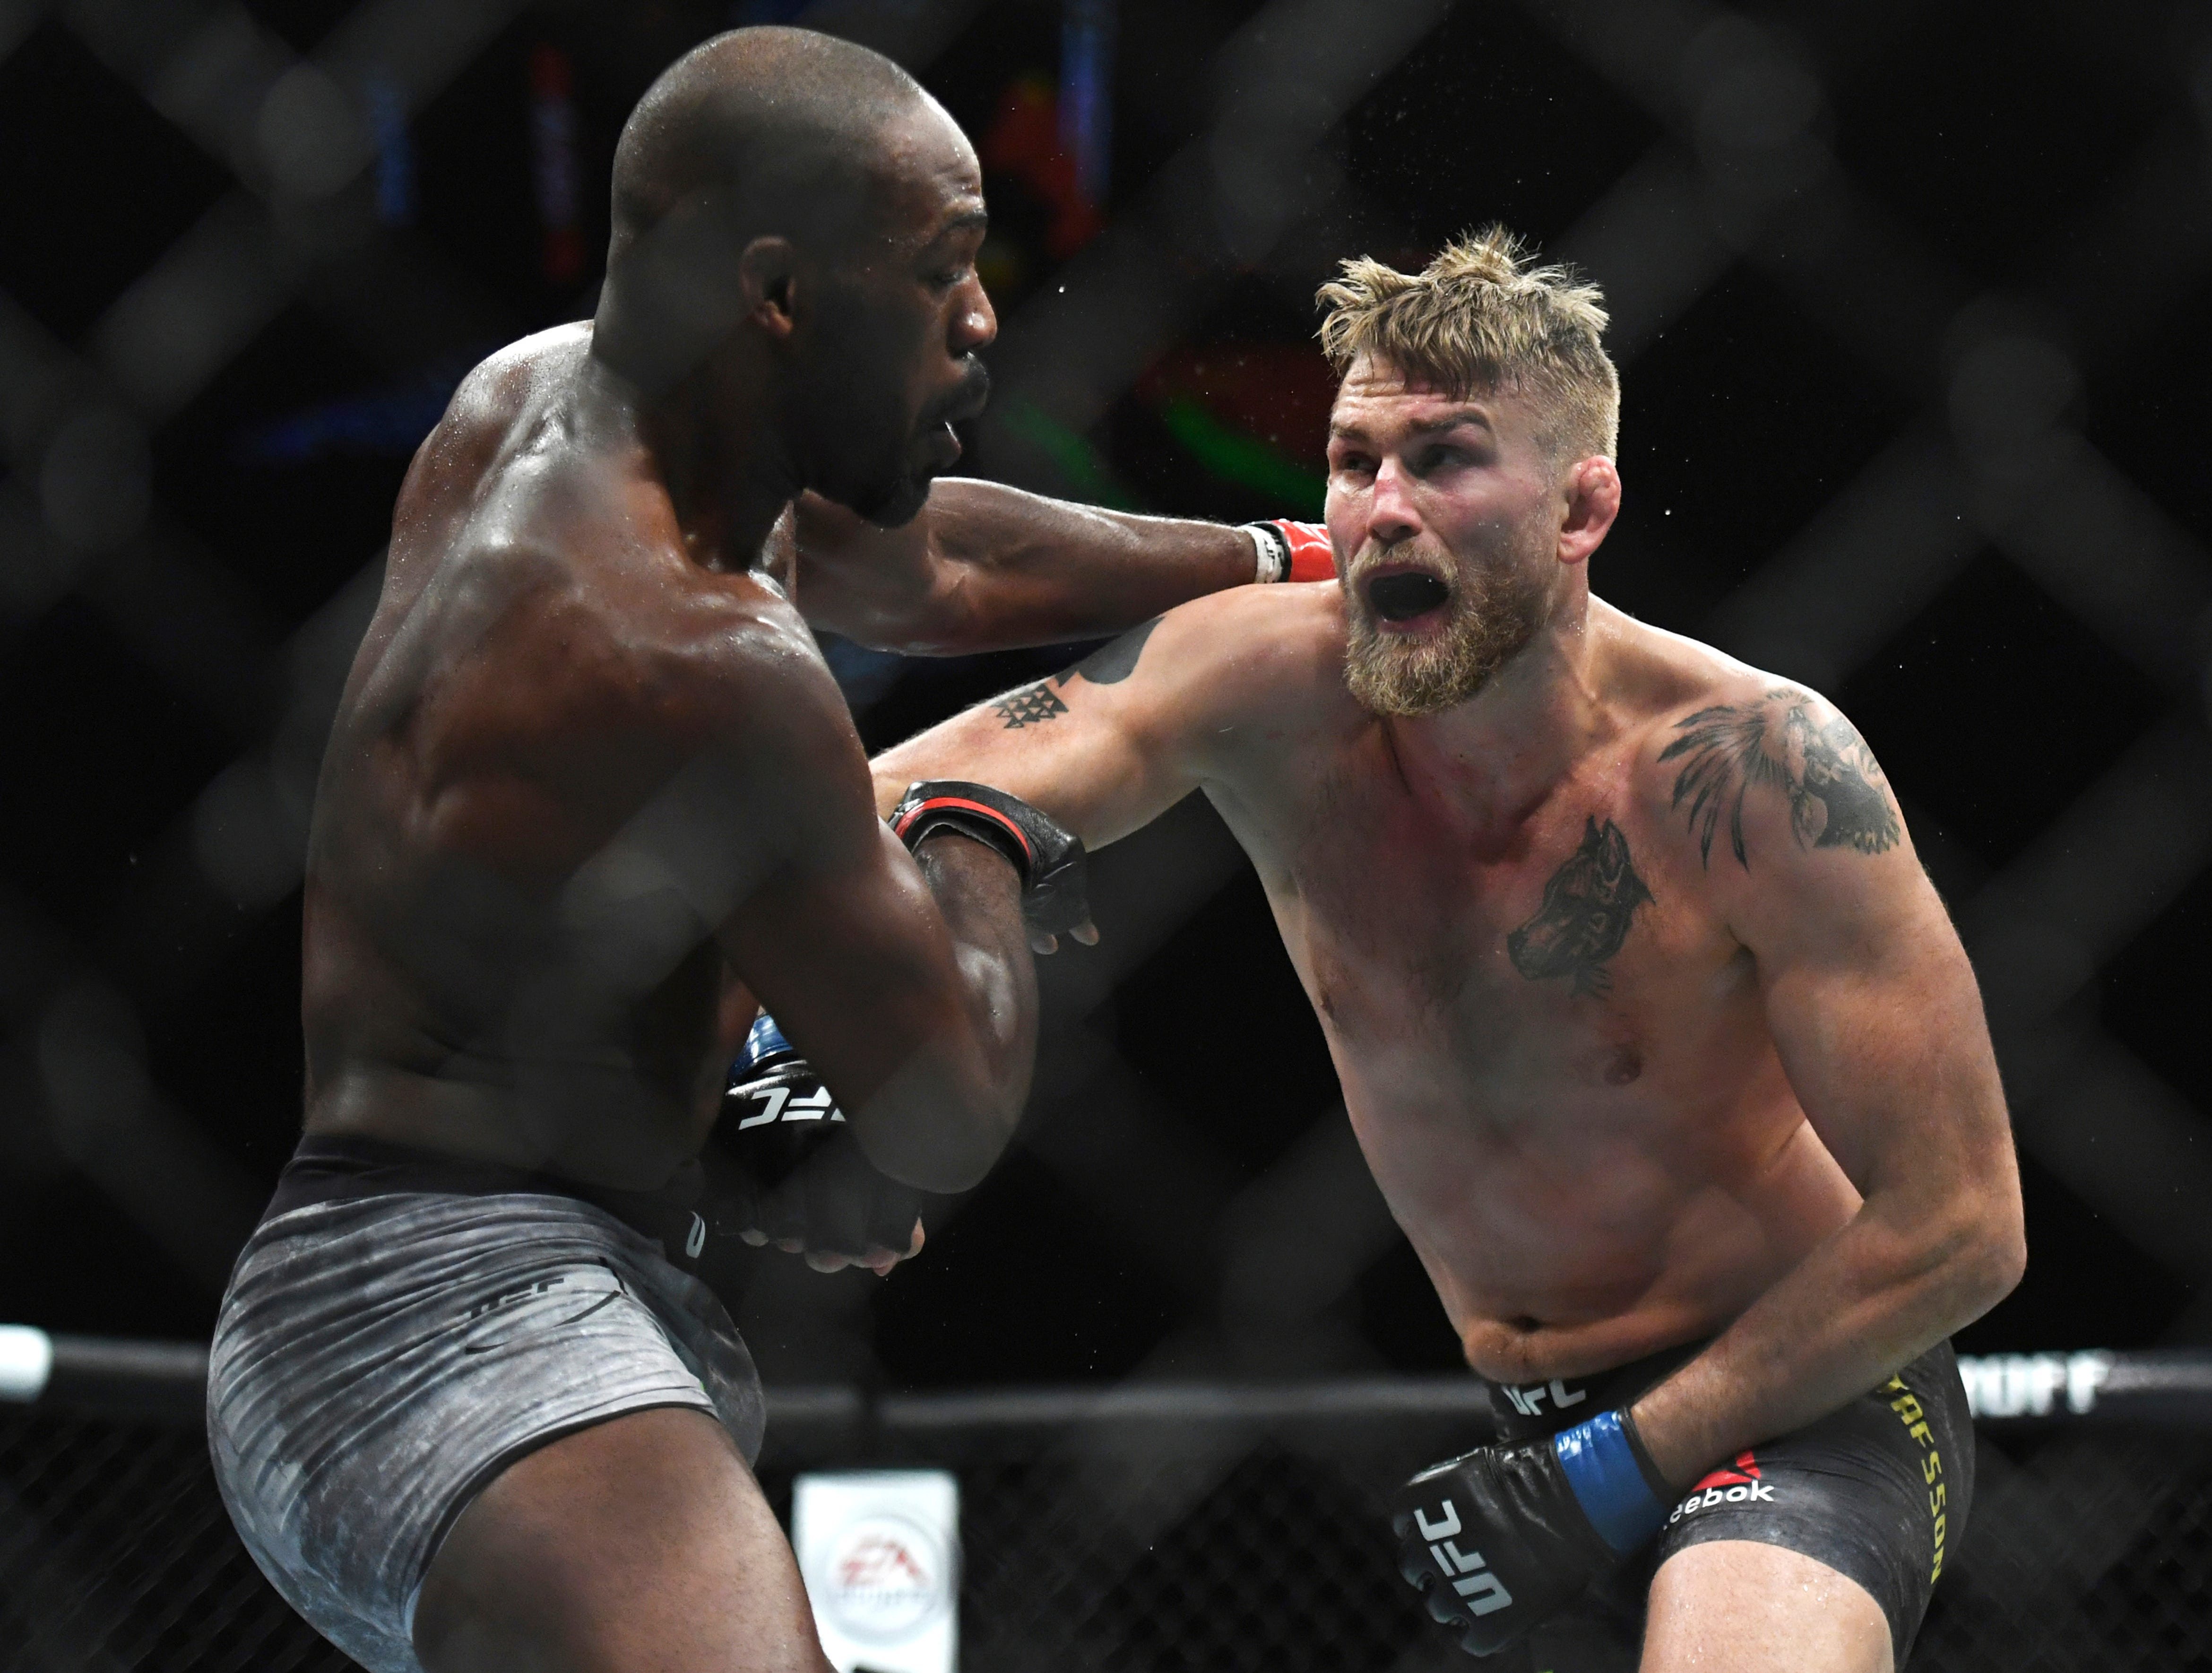 Alexander Gustafsson, right, lands a punch to Jon Jones during the UFC men's light heavyweight title mixed martial arts bout at UFC 232, Saturday, Dec. 29, 2018, in Inglewood, Calif. (AP Photo/Kyusung Gong)